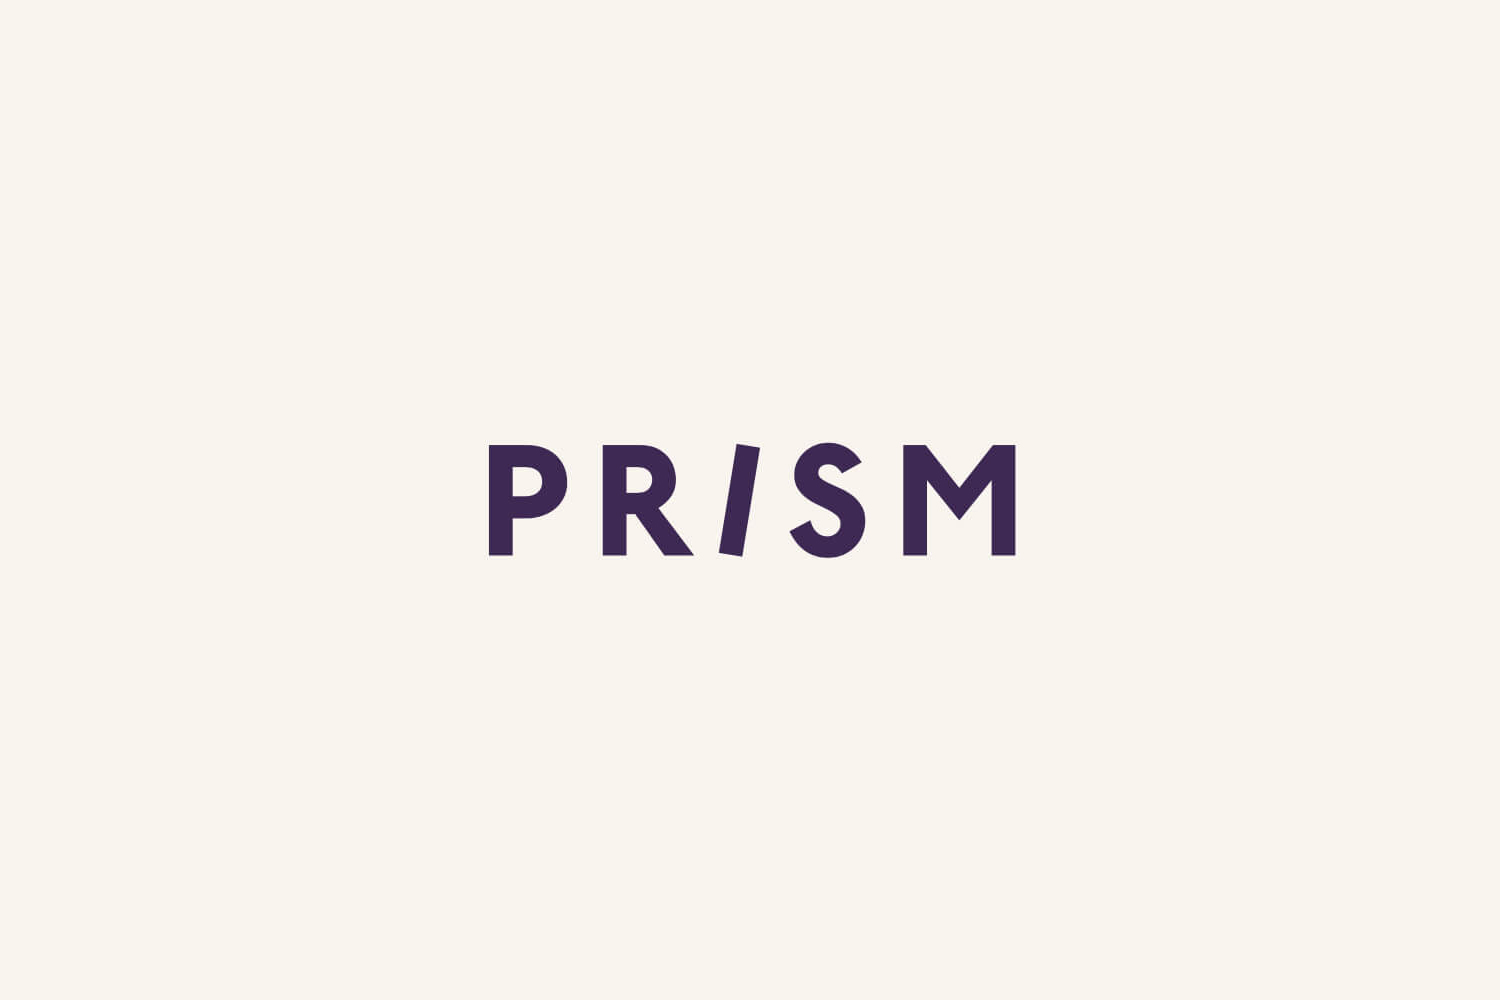 Logotype for American laminate brand Prism by Atlanta based graphic design studio Matchstic